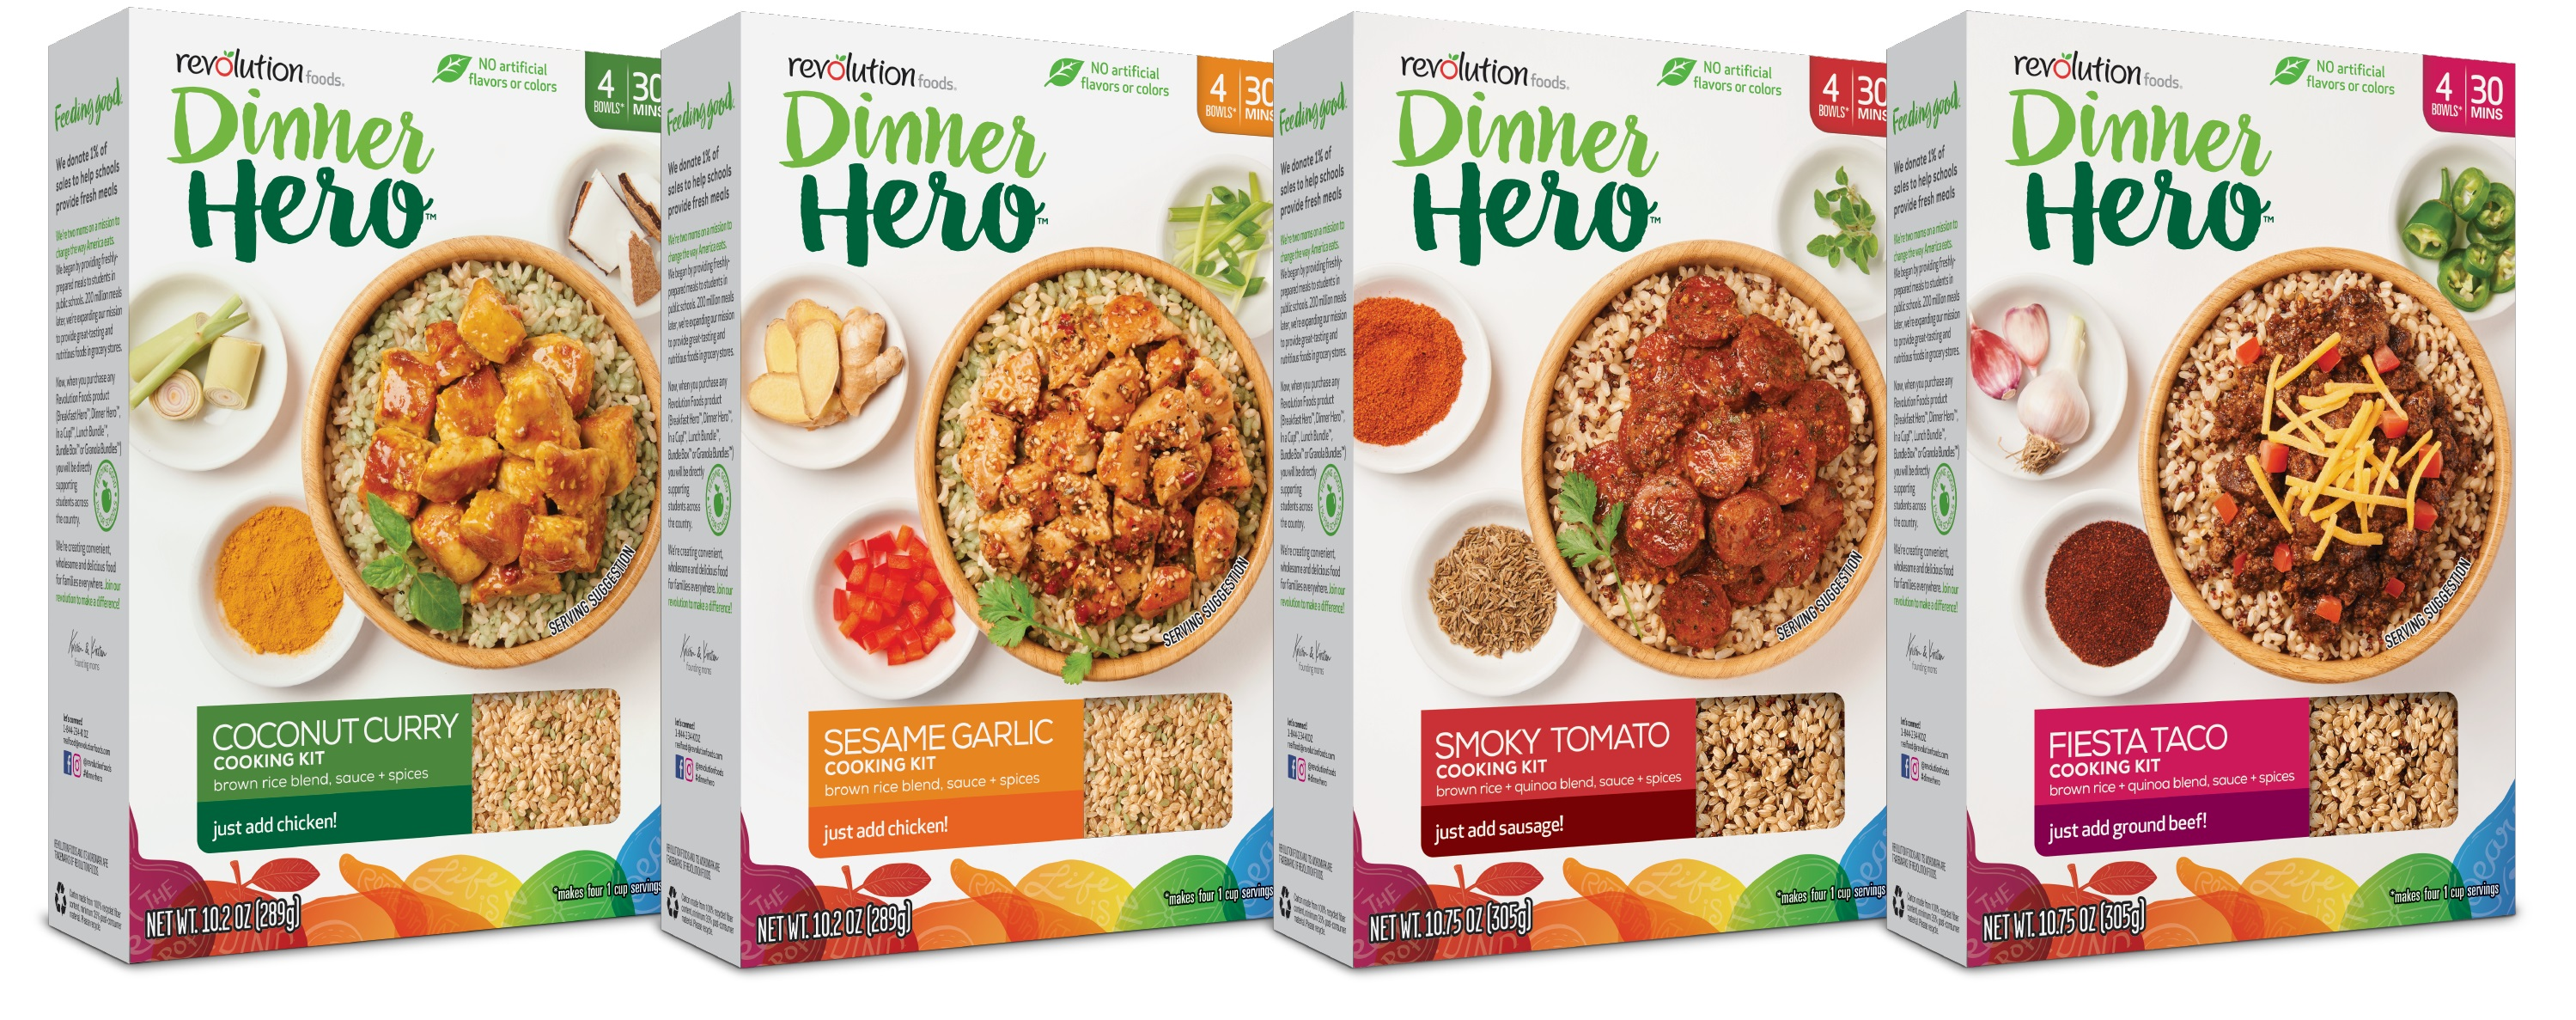 Revolution Foods' new line of Dinner Hero meal kits